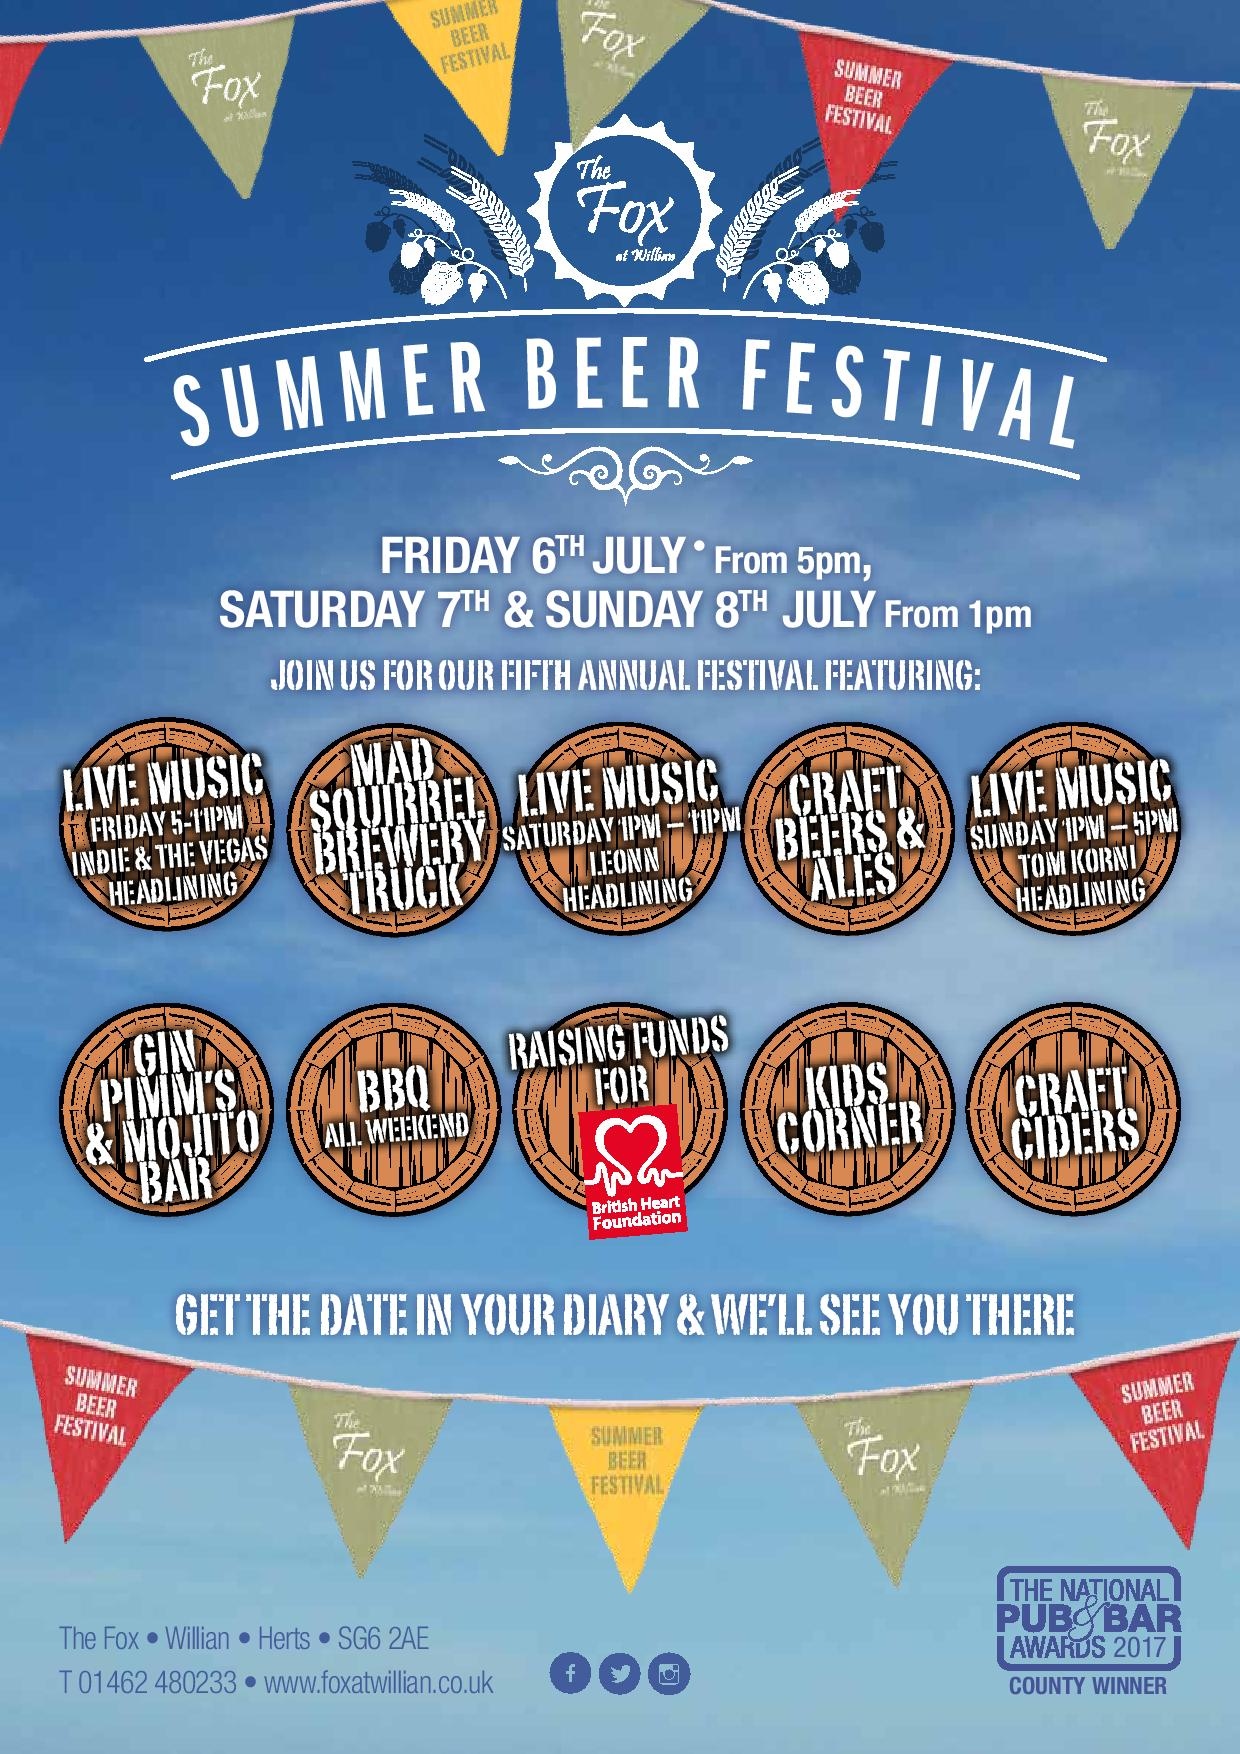 Our Summer Beer Festival